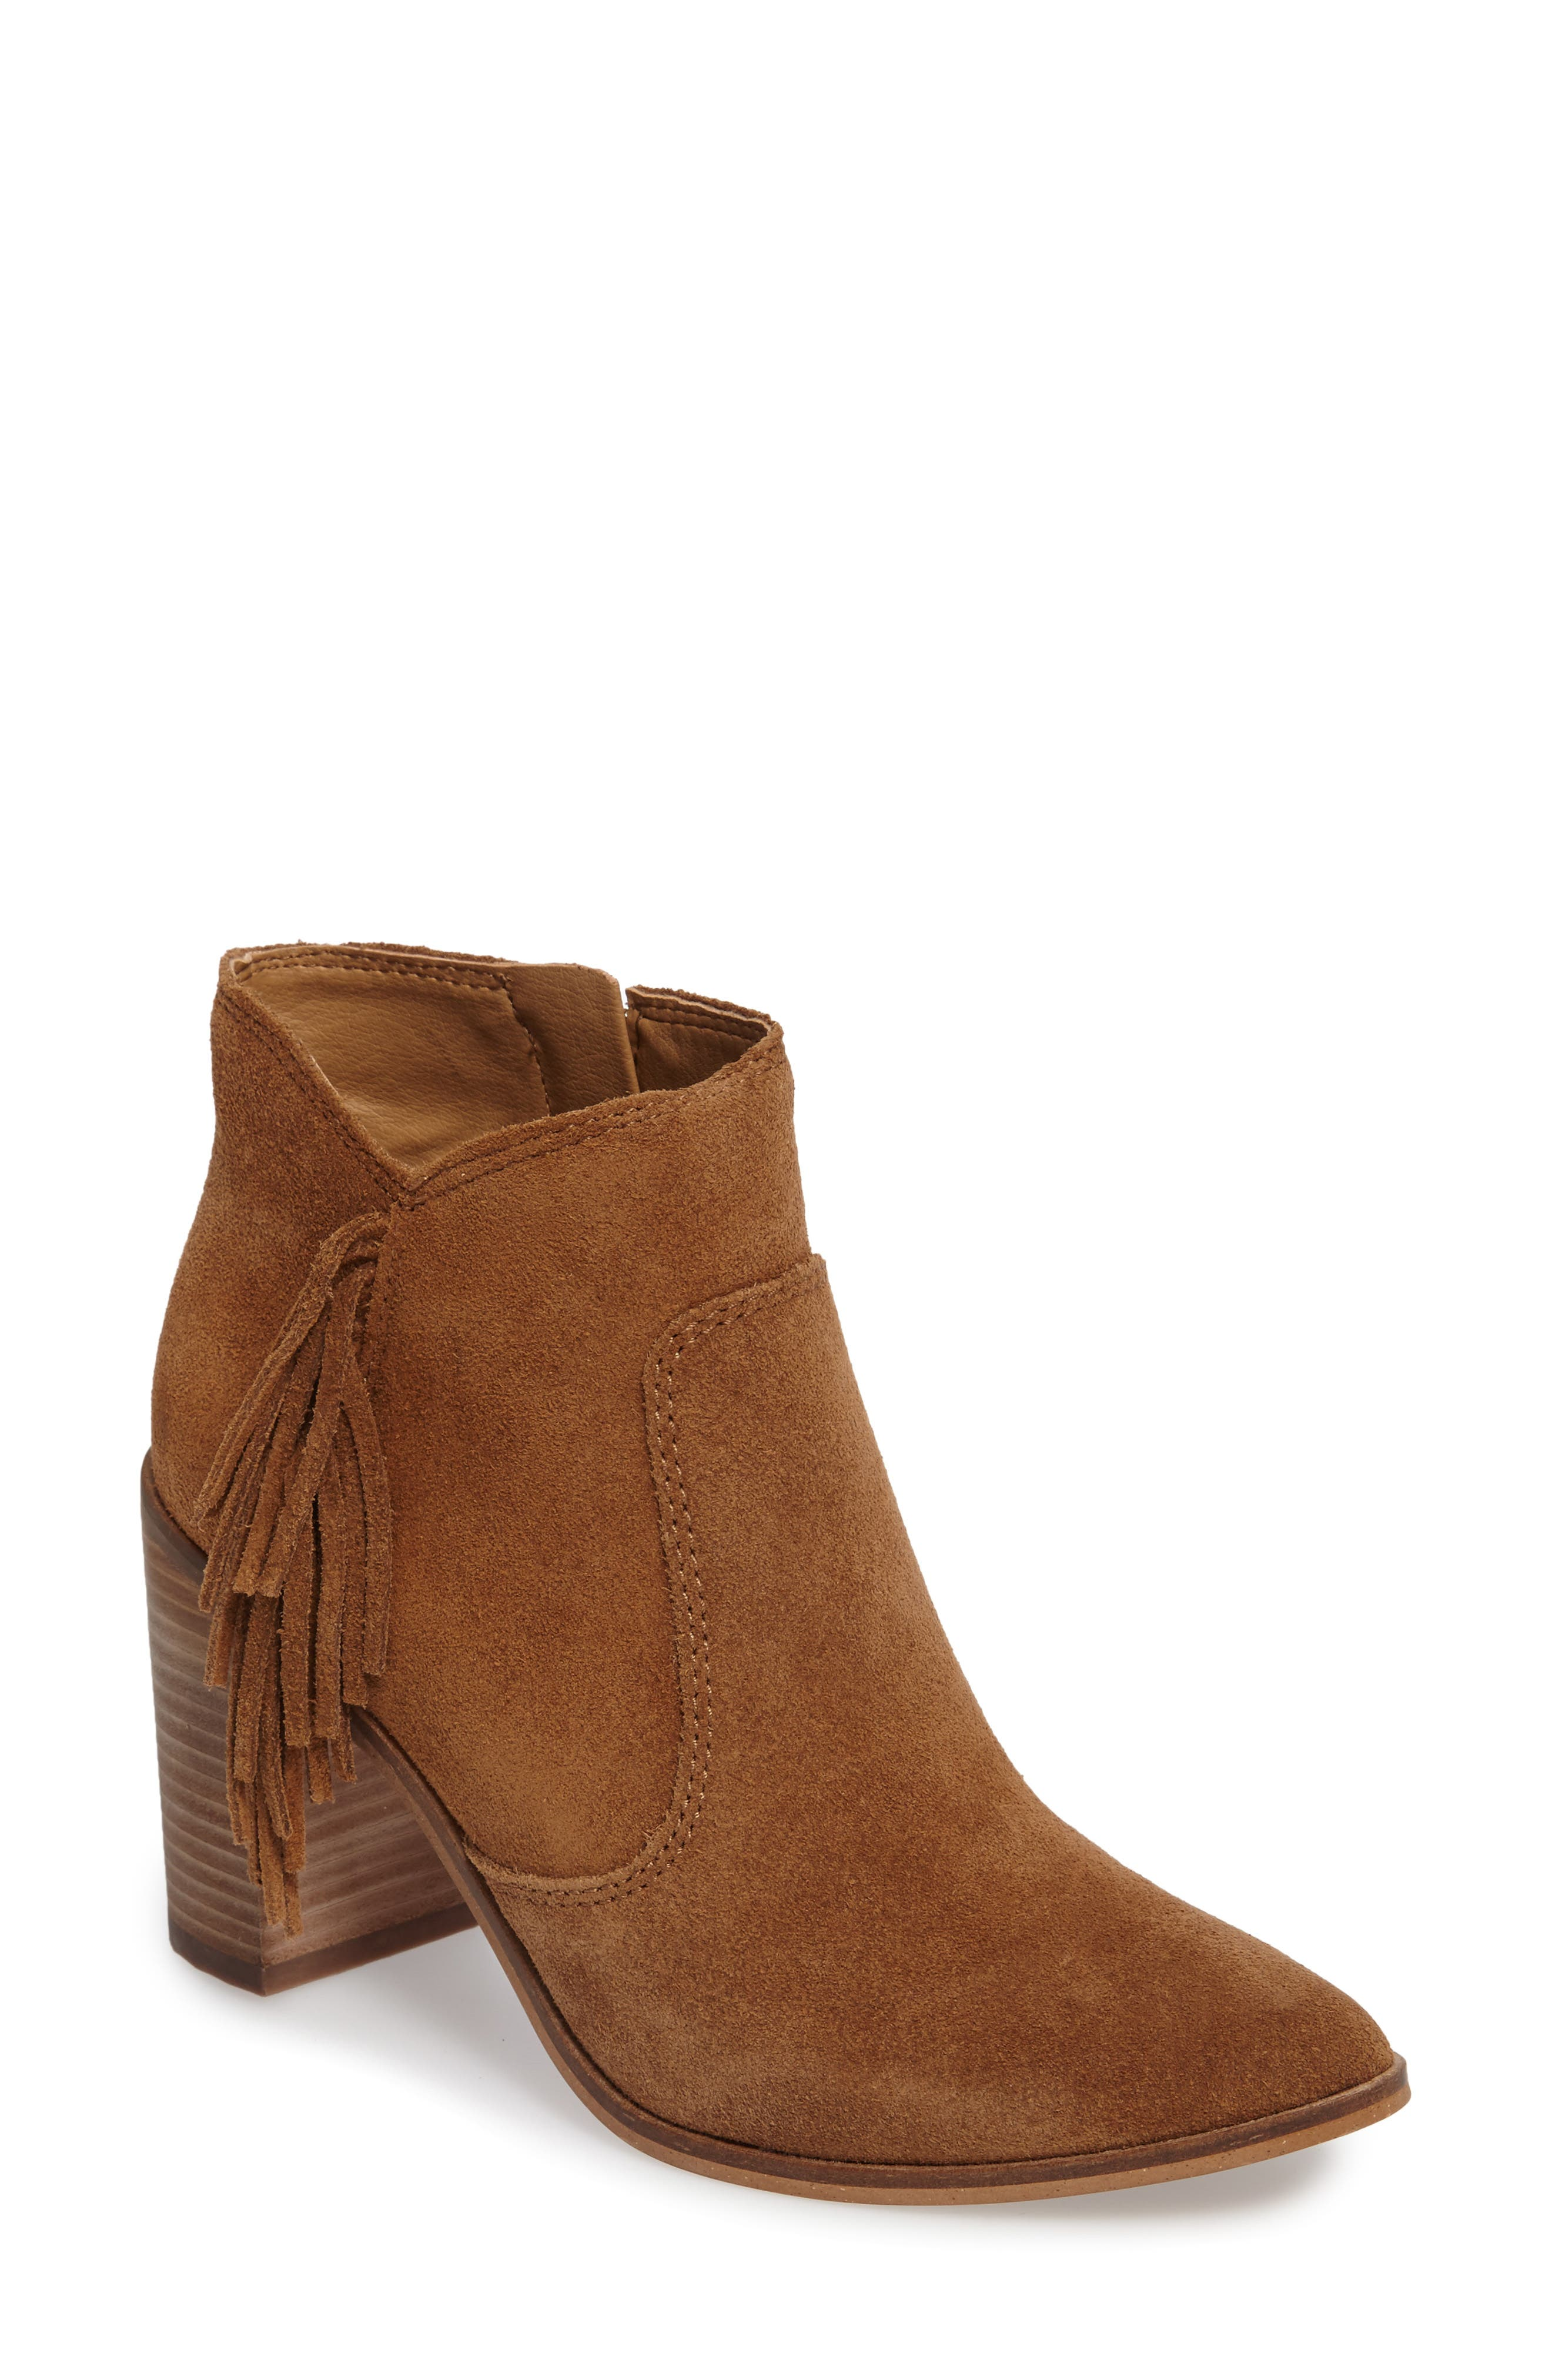 Alternate Image 1 Selected - Lucky Brand Mercerr Pointy Toe Fringe Bootie (Women)